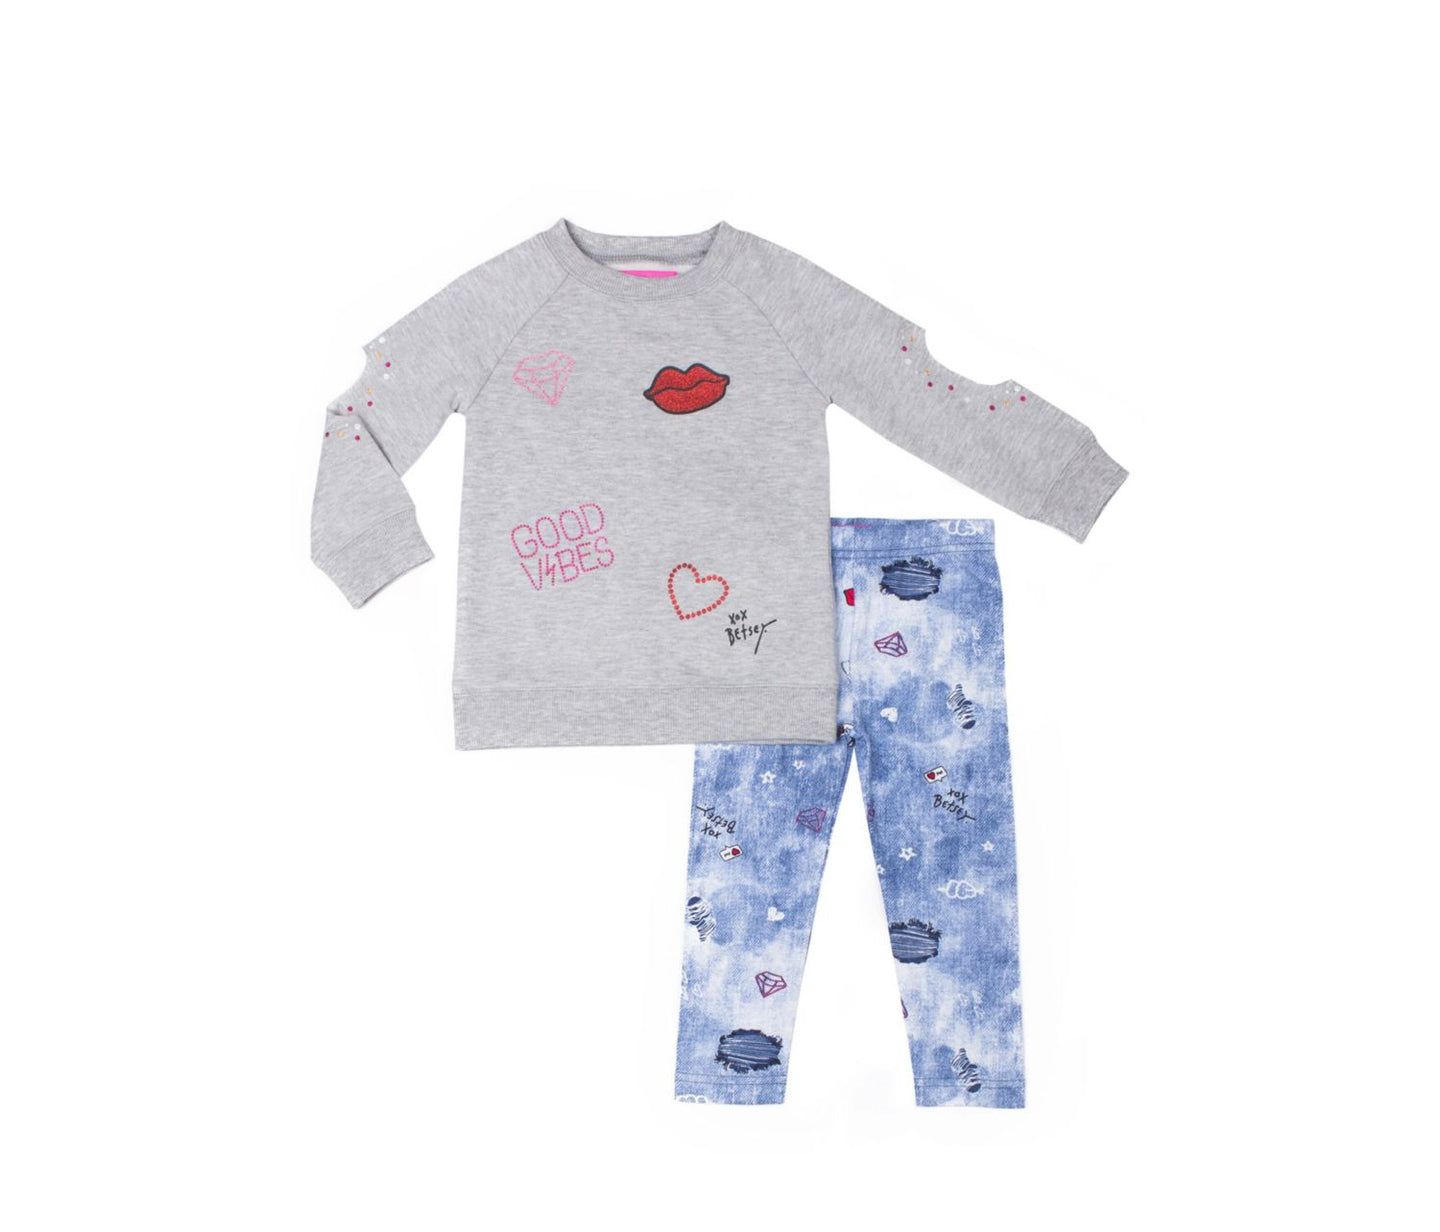 CITY GIRL TODDLER TWO PIECE SET GREY - APPAREL - Betsey Johnson